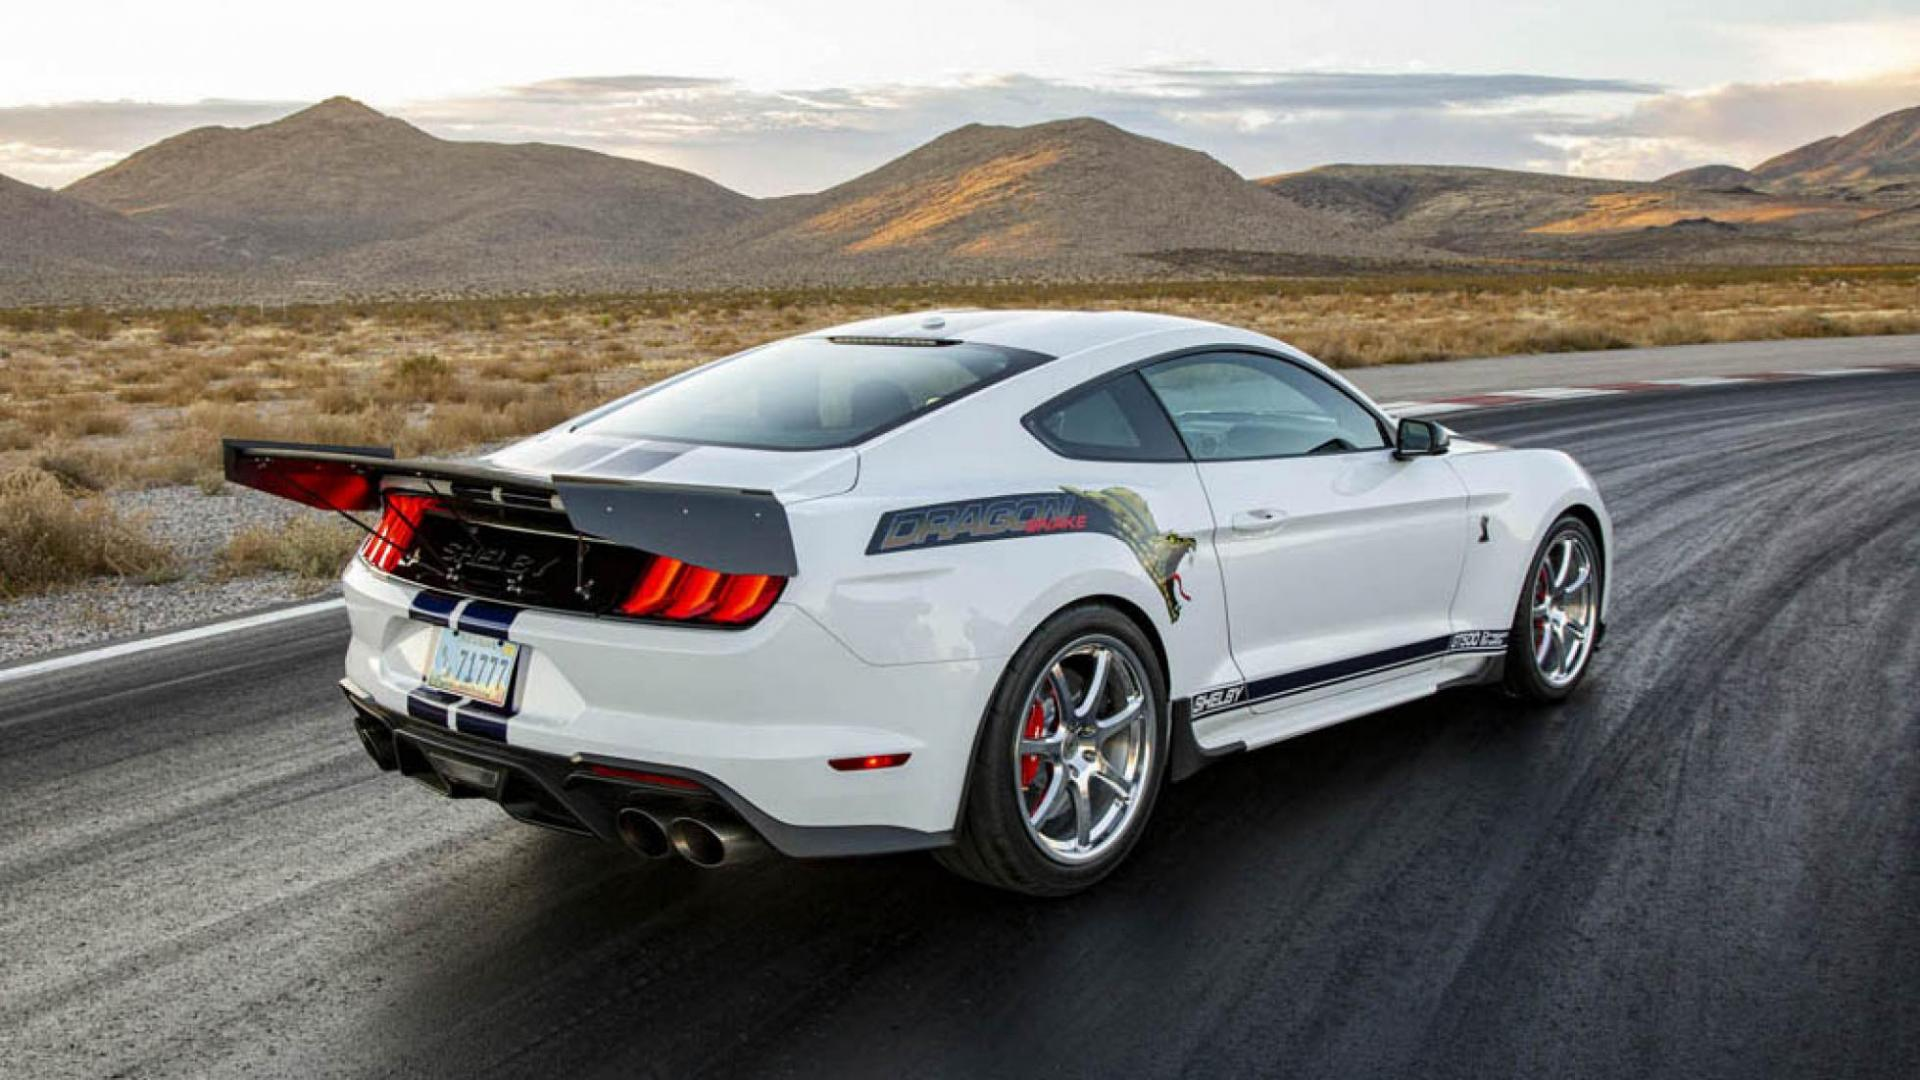 Shebly Ford Mustang GT500 Dragon Snake